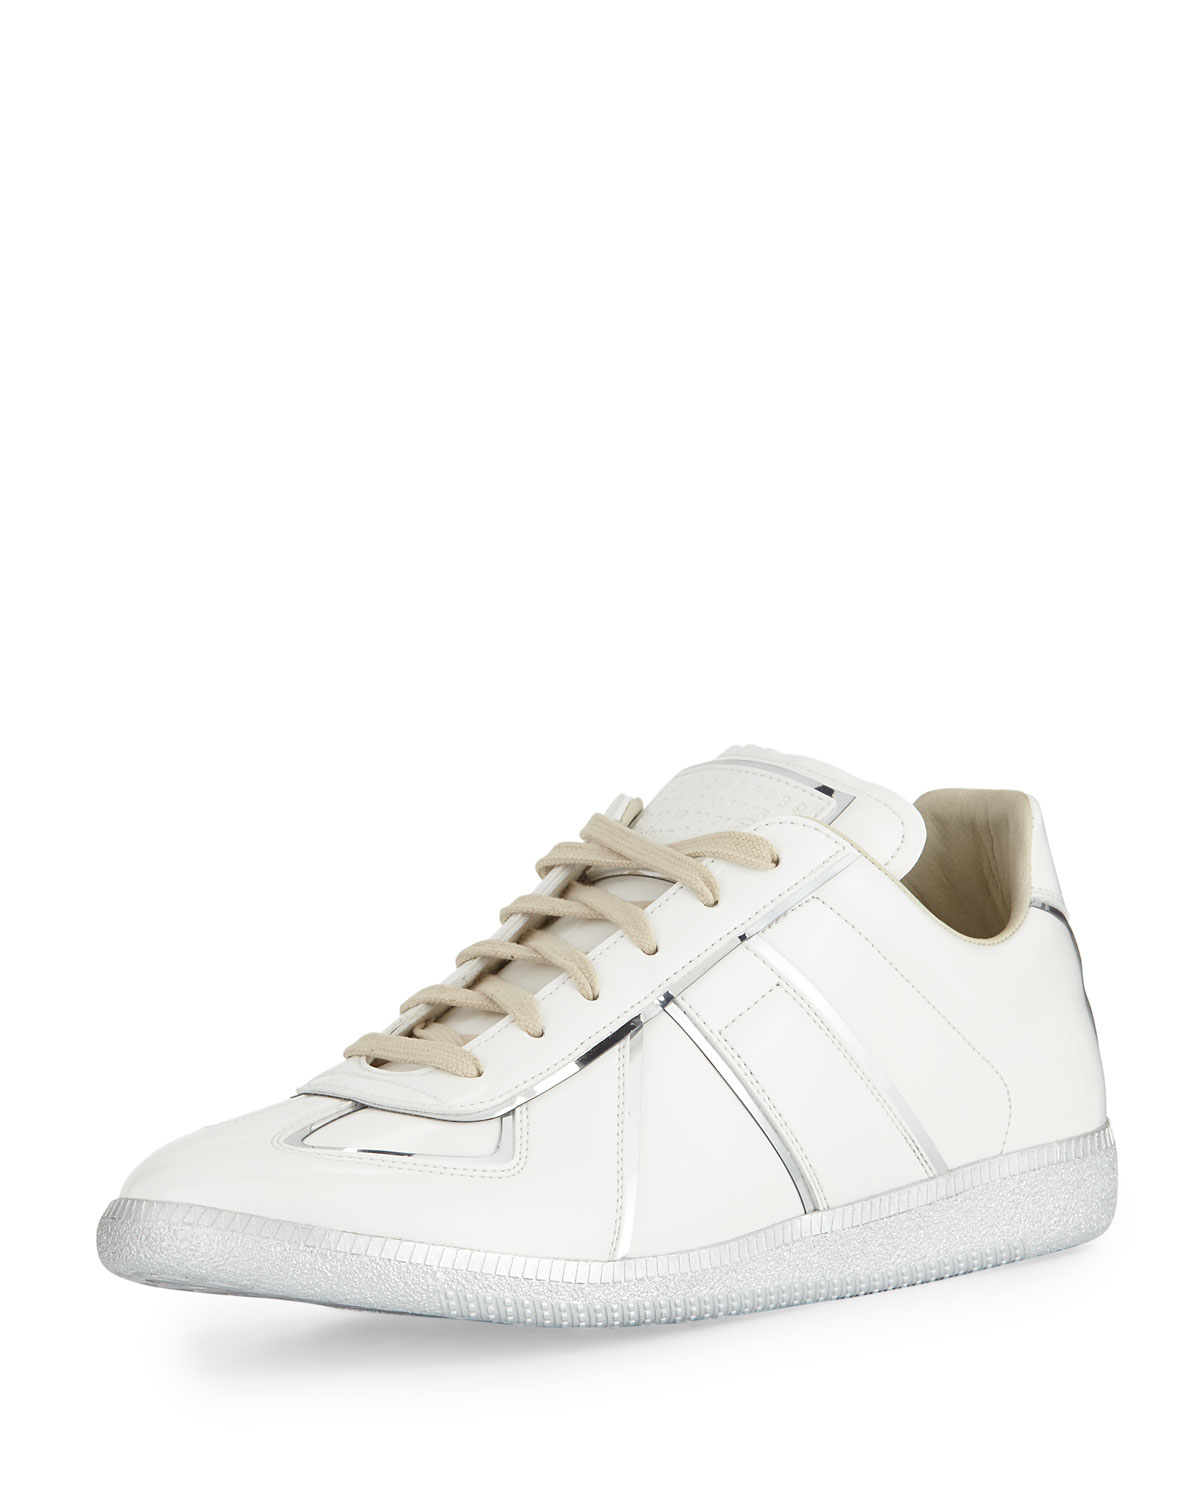 maison margiela replica metal trim low top sneaker in white for men lyst. Black Bedroom Furniture Sets. Home Design Ideas